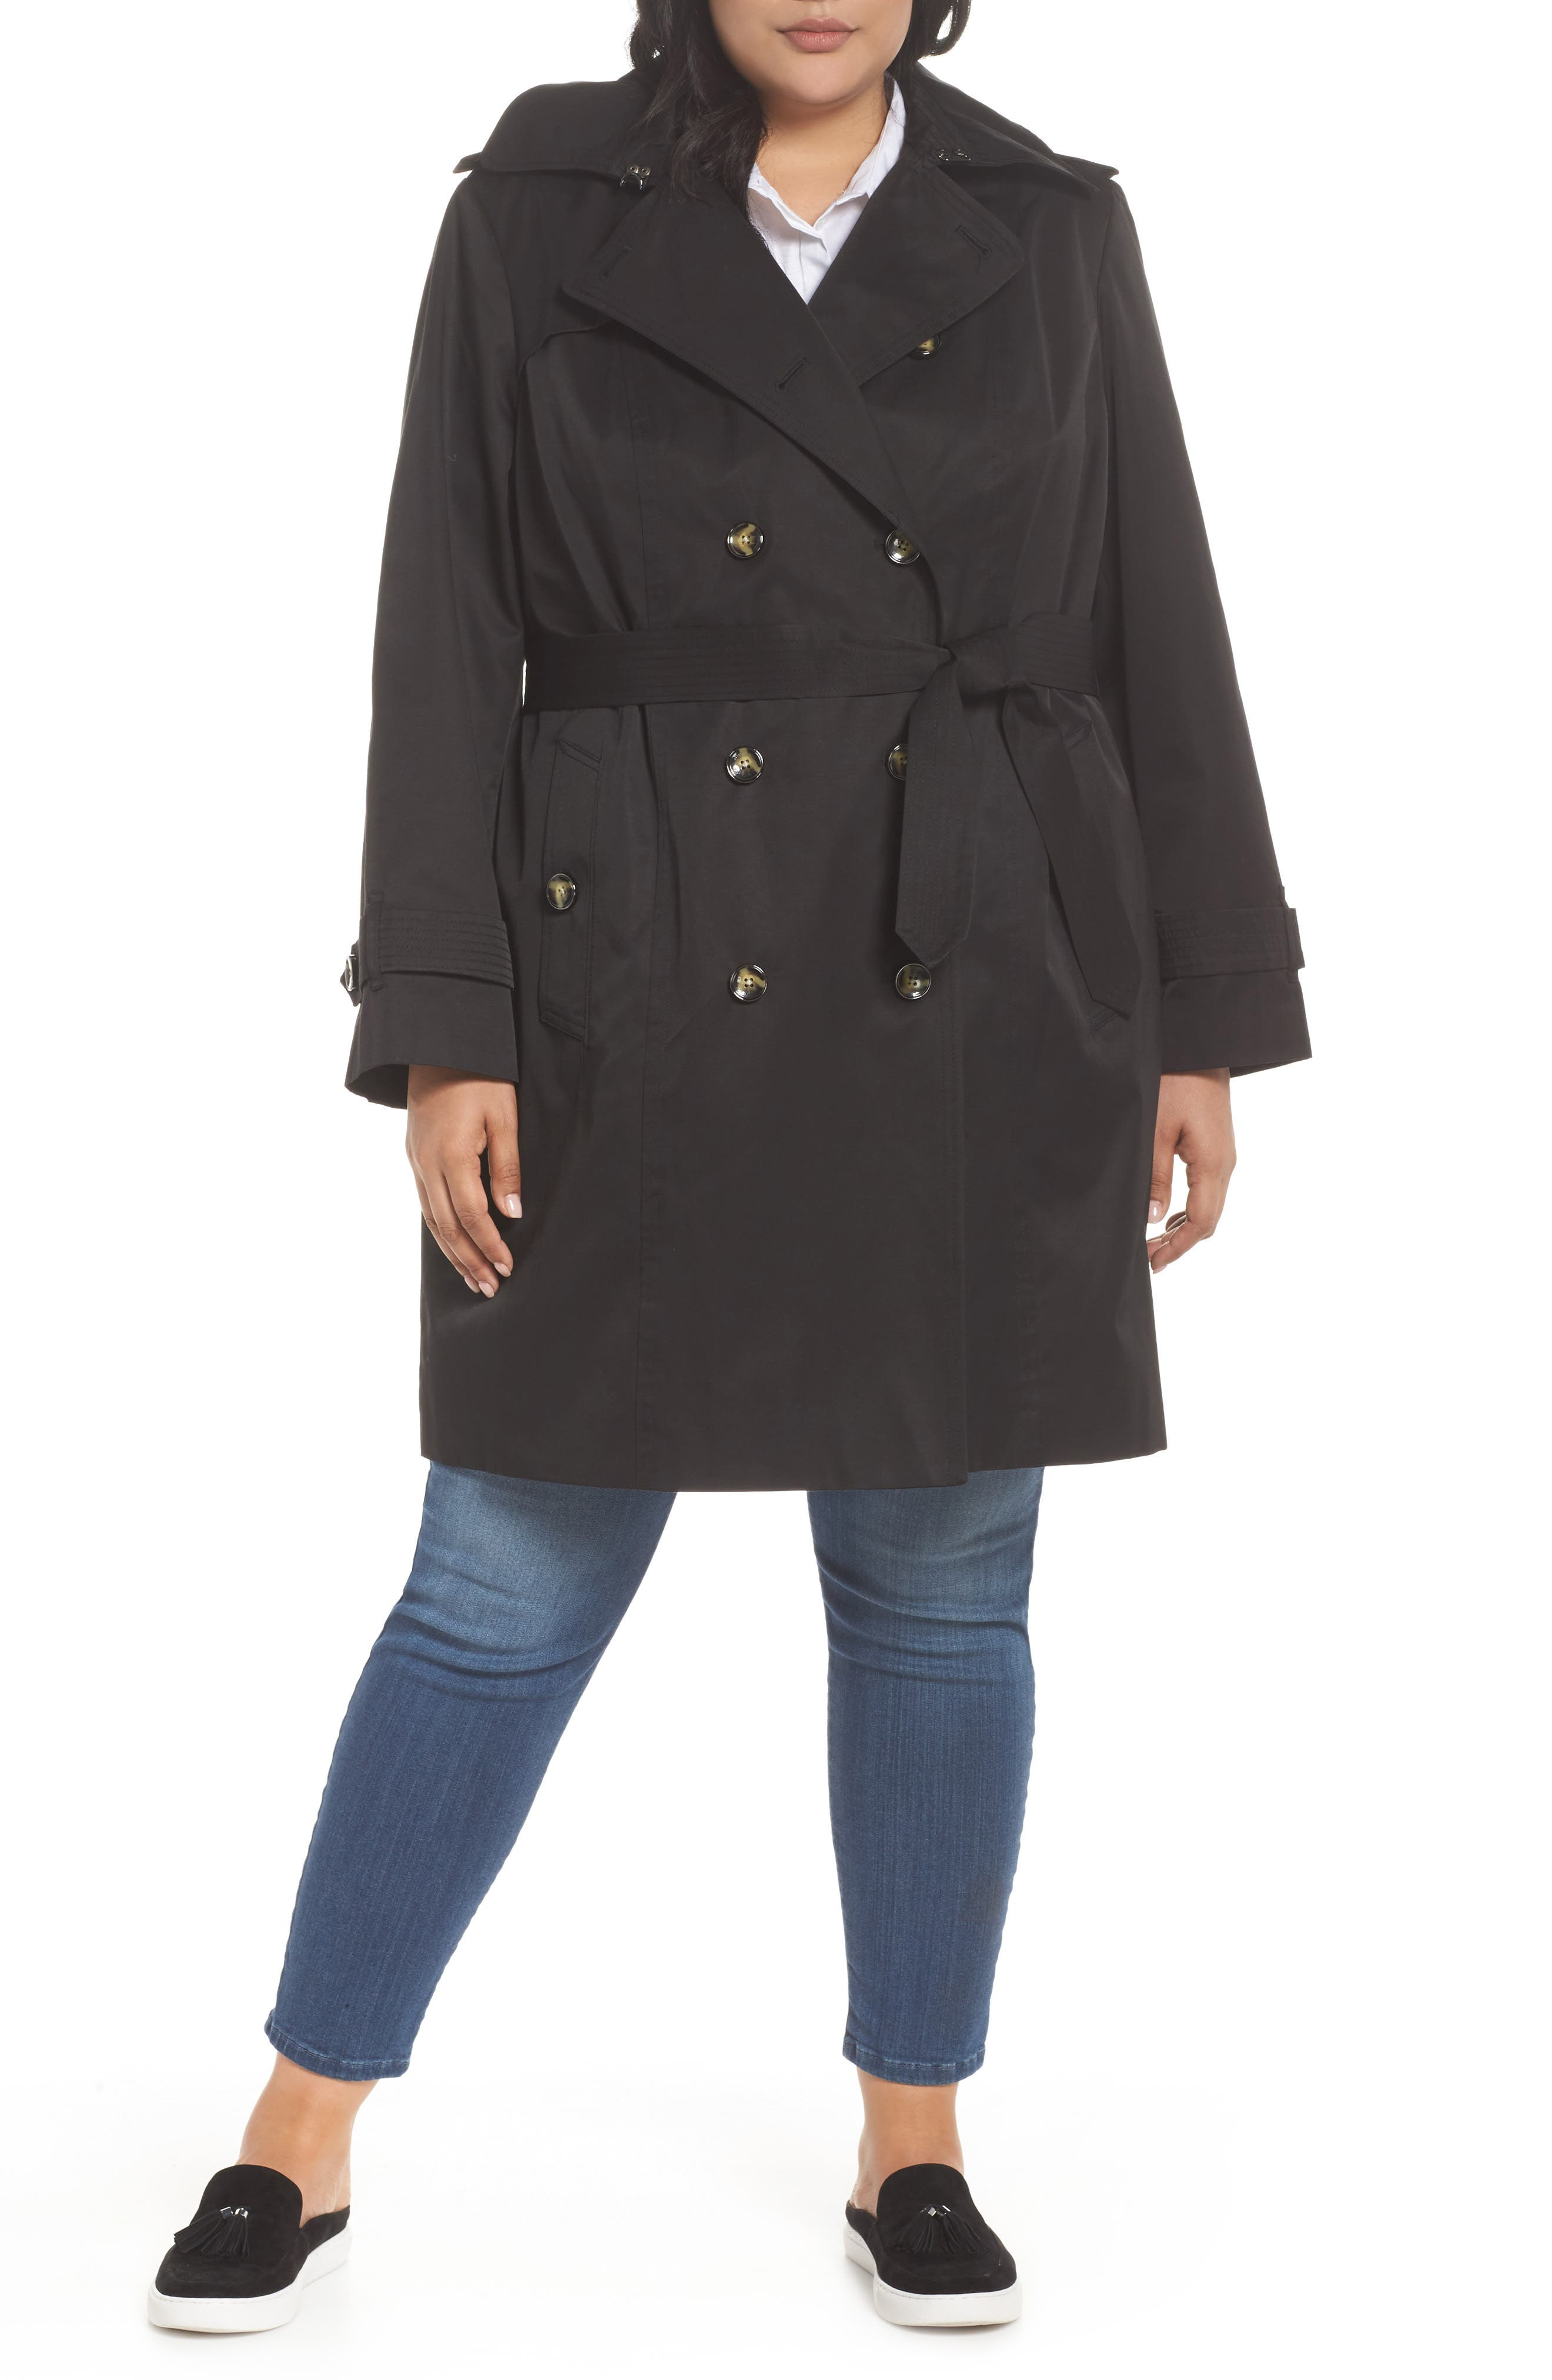 Main Image - London Fog Hooded Double Breasted Trench Coat (Plus Size)